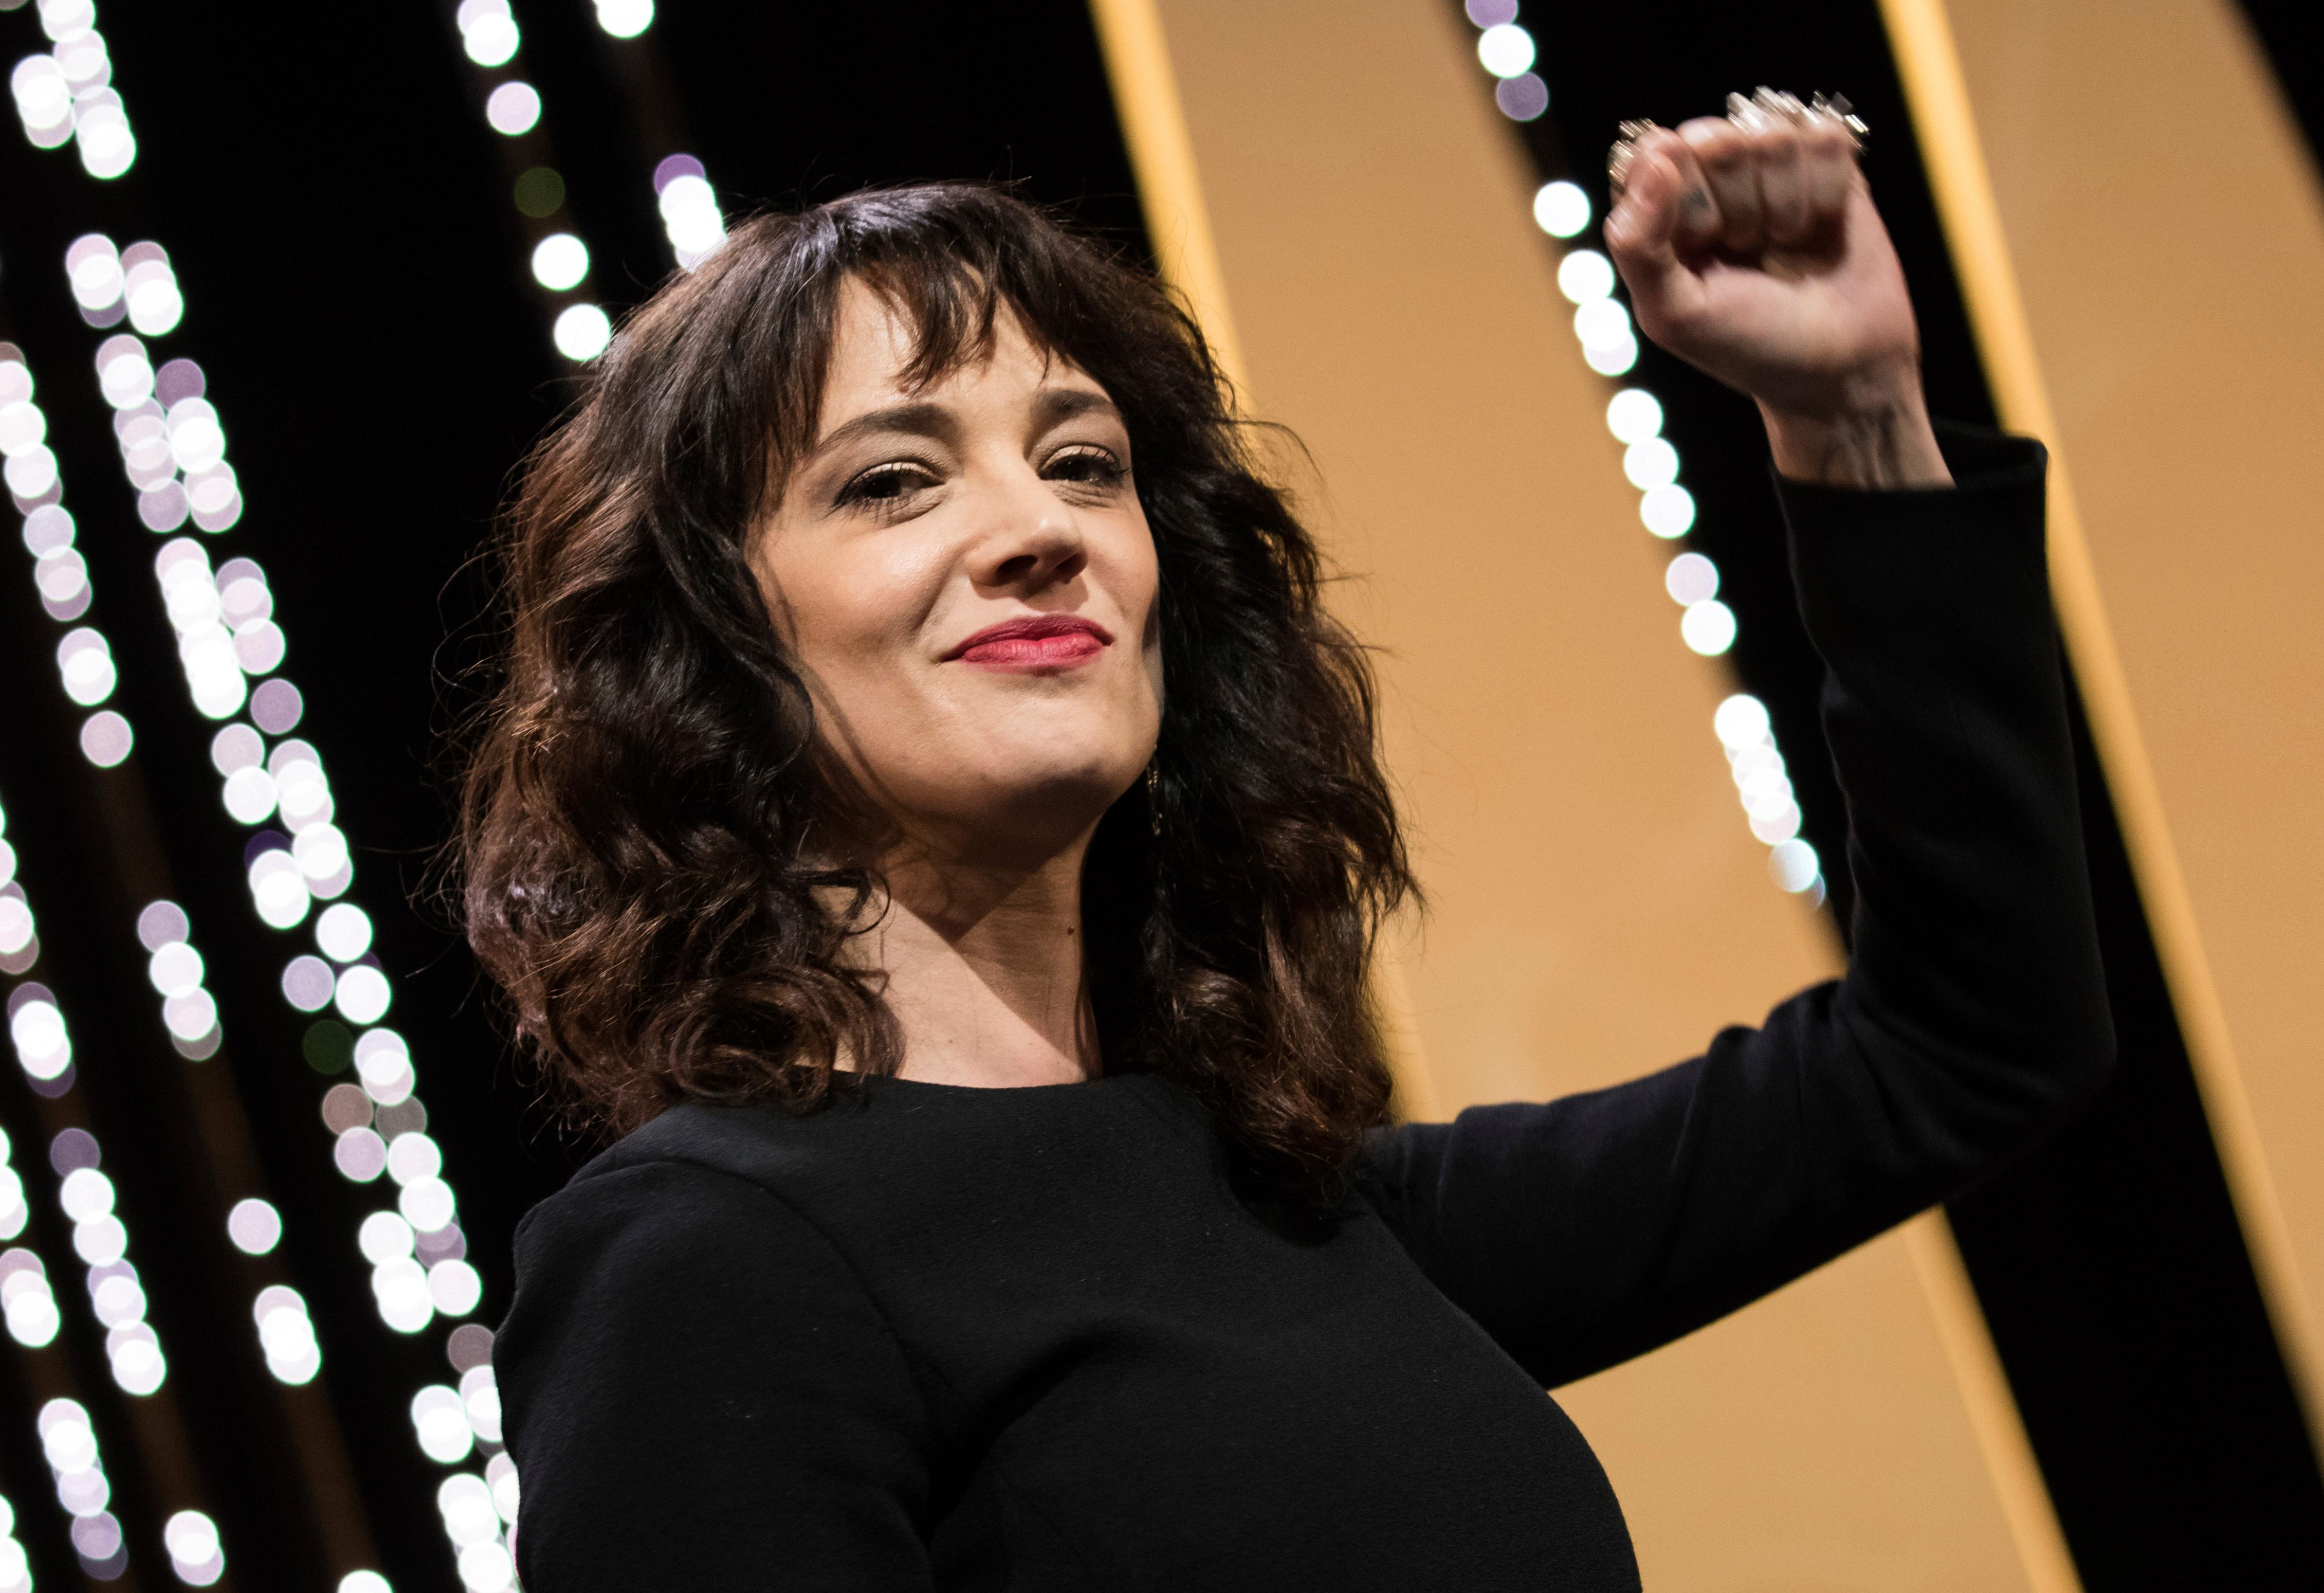 FILE - In this May 19, 2018 file photo, actress Asia Argento gestures during the closing ceremony of the 71st international film festival in Cannes, France. Argento, one of the most prominent activists of the #MeToo movement against sexual harassment, recently settled a complaint filed against her by a young actor and musician who said she sexually assaulted him when he was 17, the New York Times reported. (Vianney Le Caer/Invision/AP, FIle)